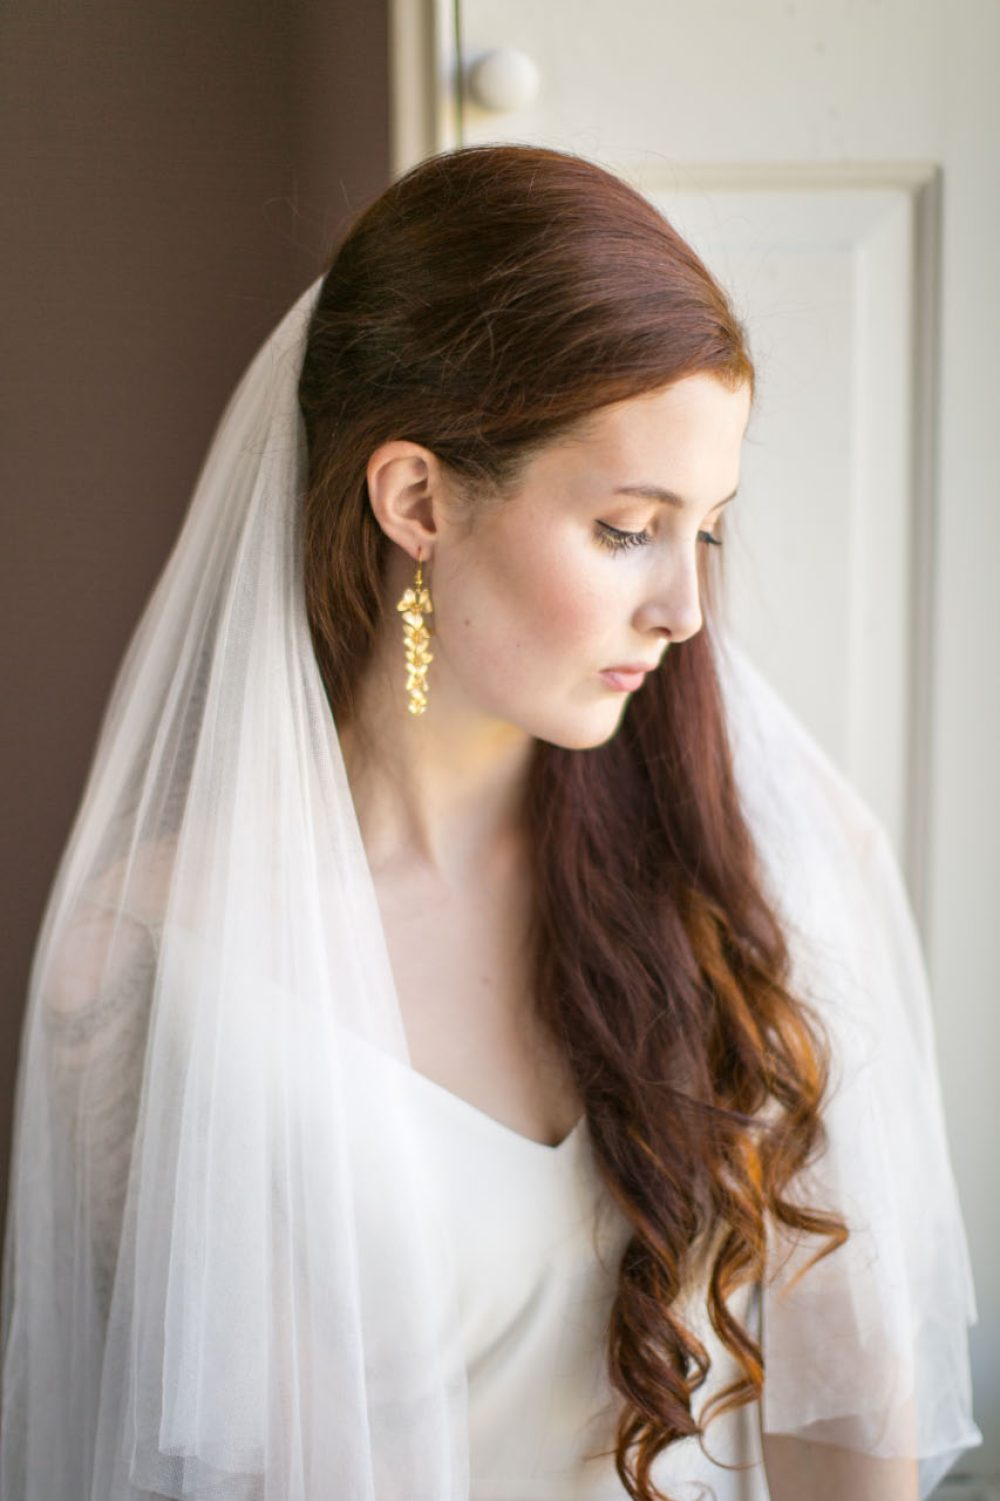 victoria-millesime, gold-dust-orchid-bridal-earrings, Image by Anneli Marinovich